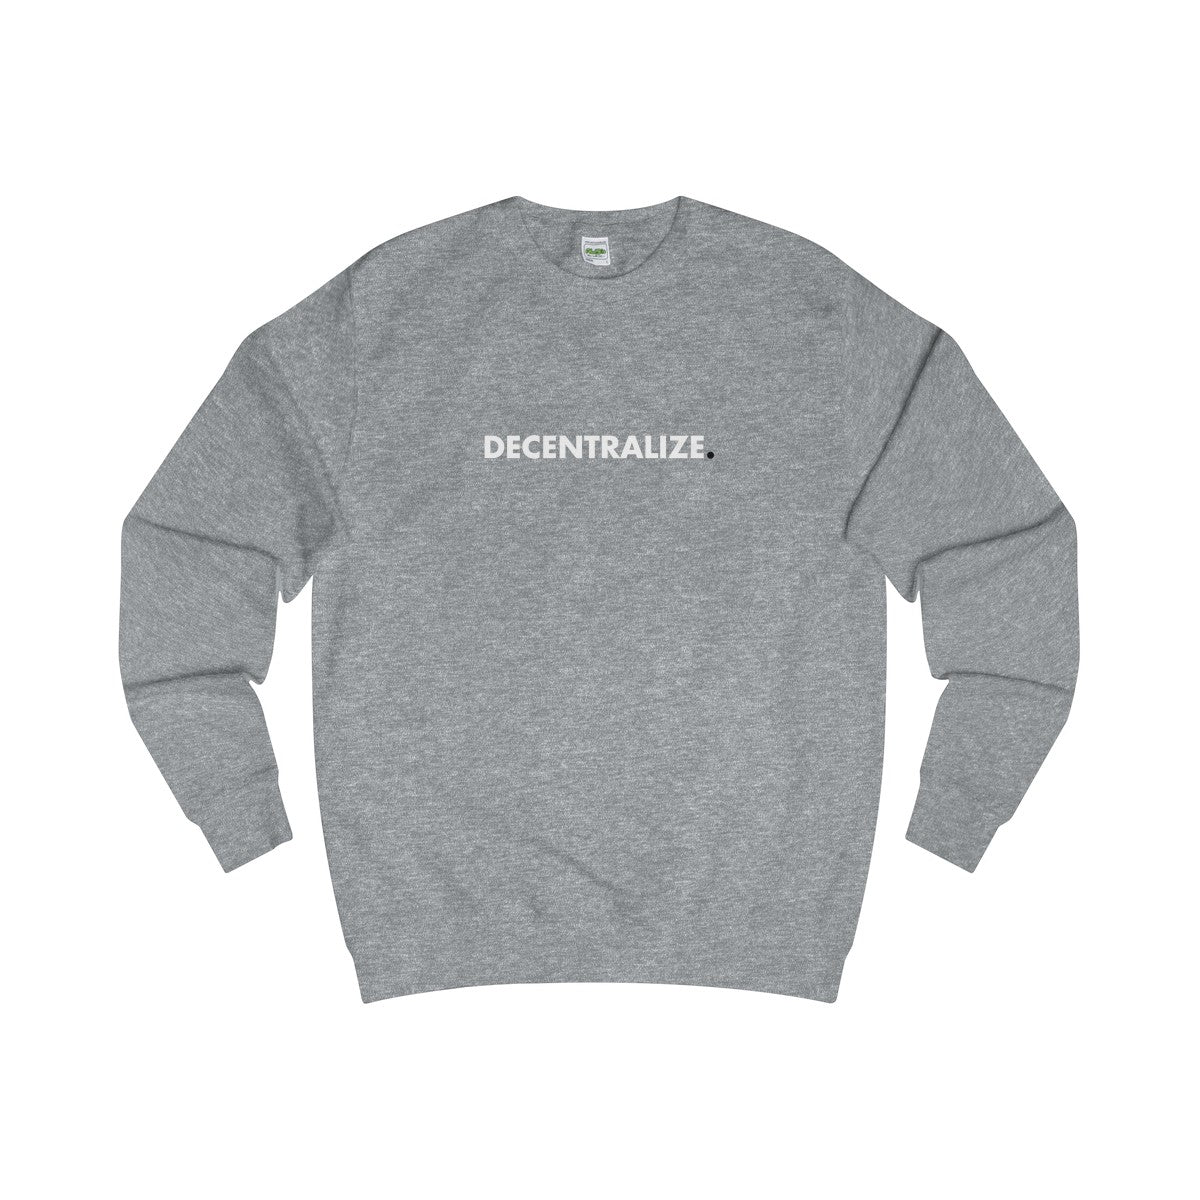 Sweater | Decentralize - Heather Grey - Cryppify